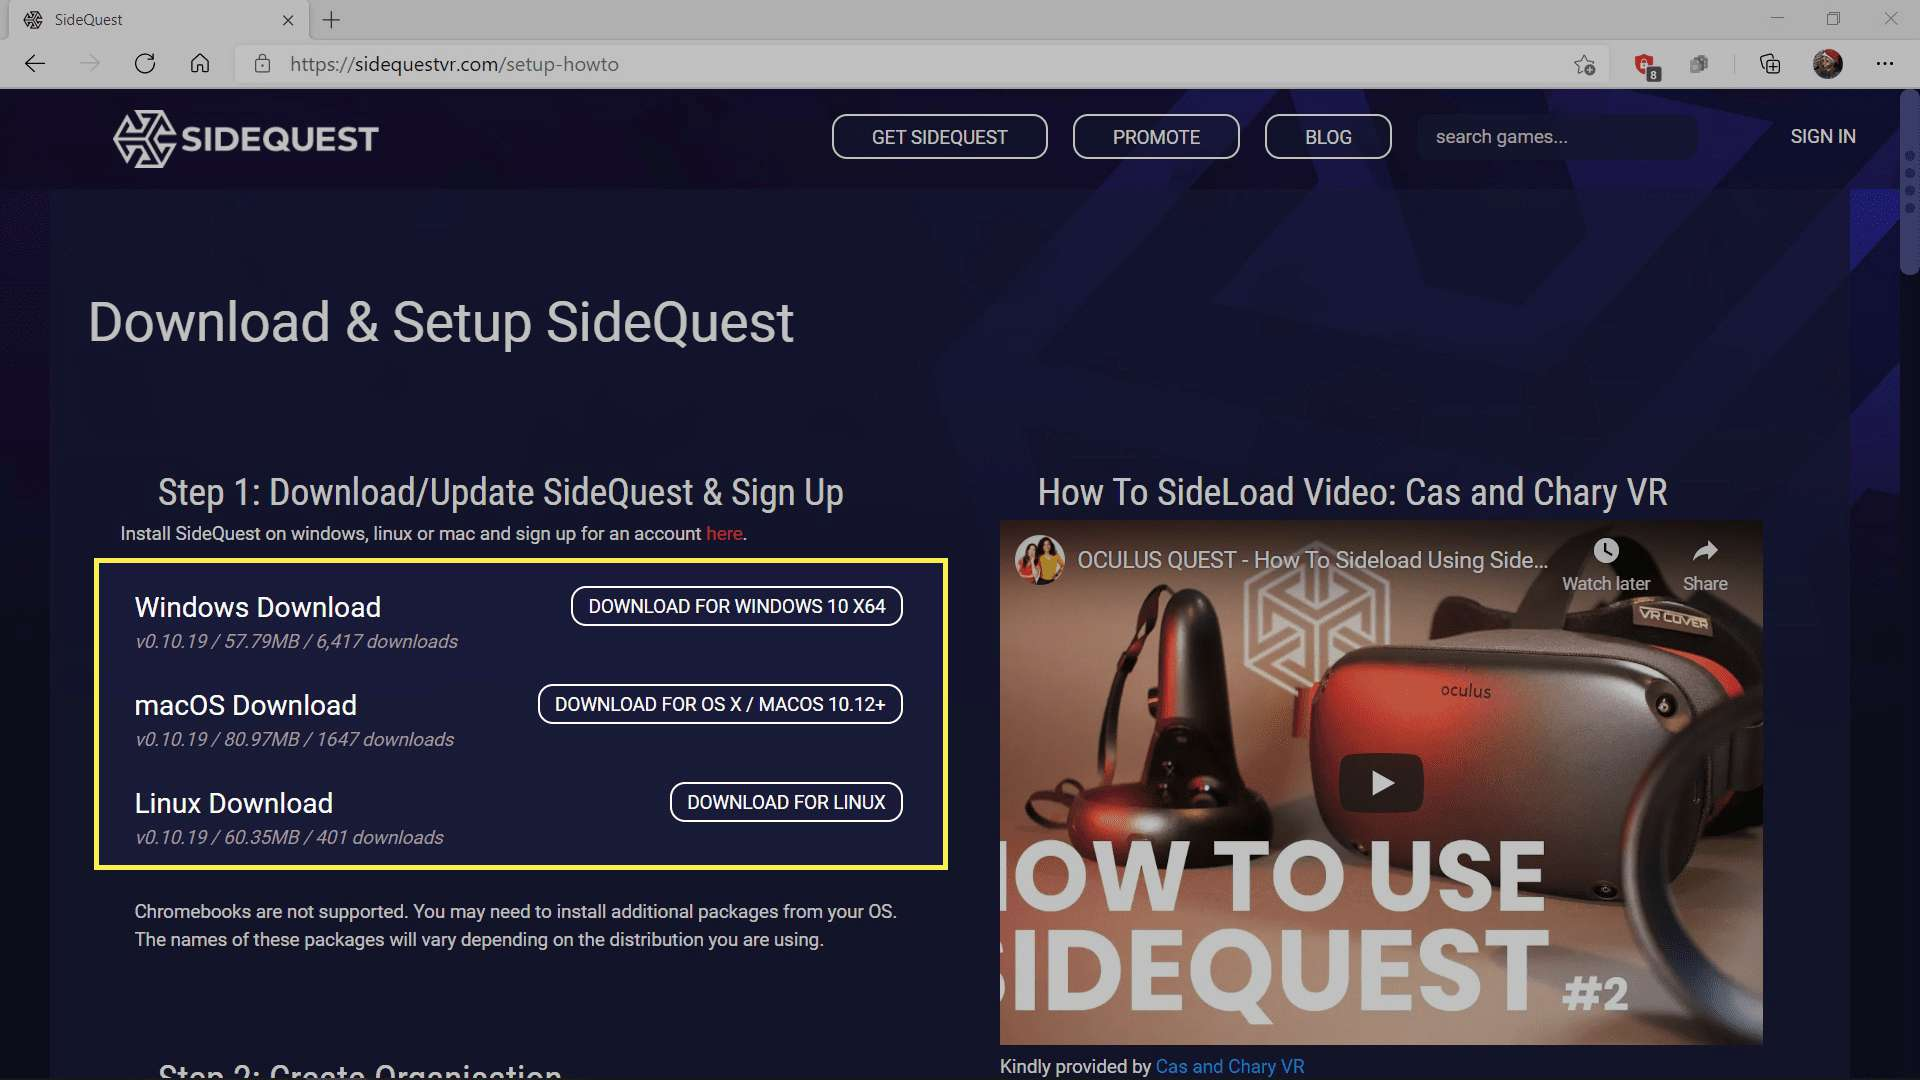 The SideQuest download page with download options highlighted